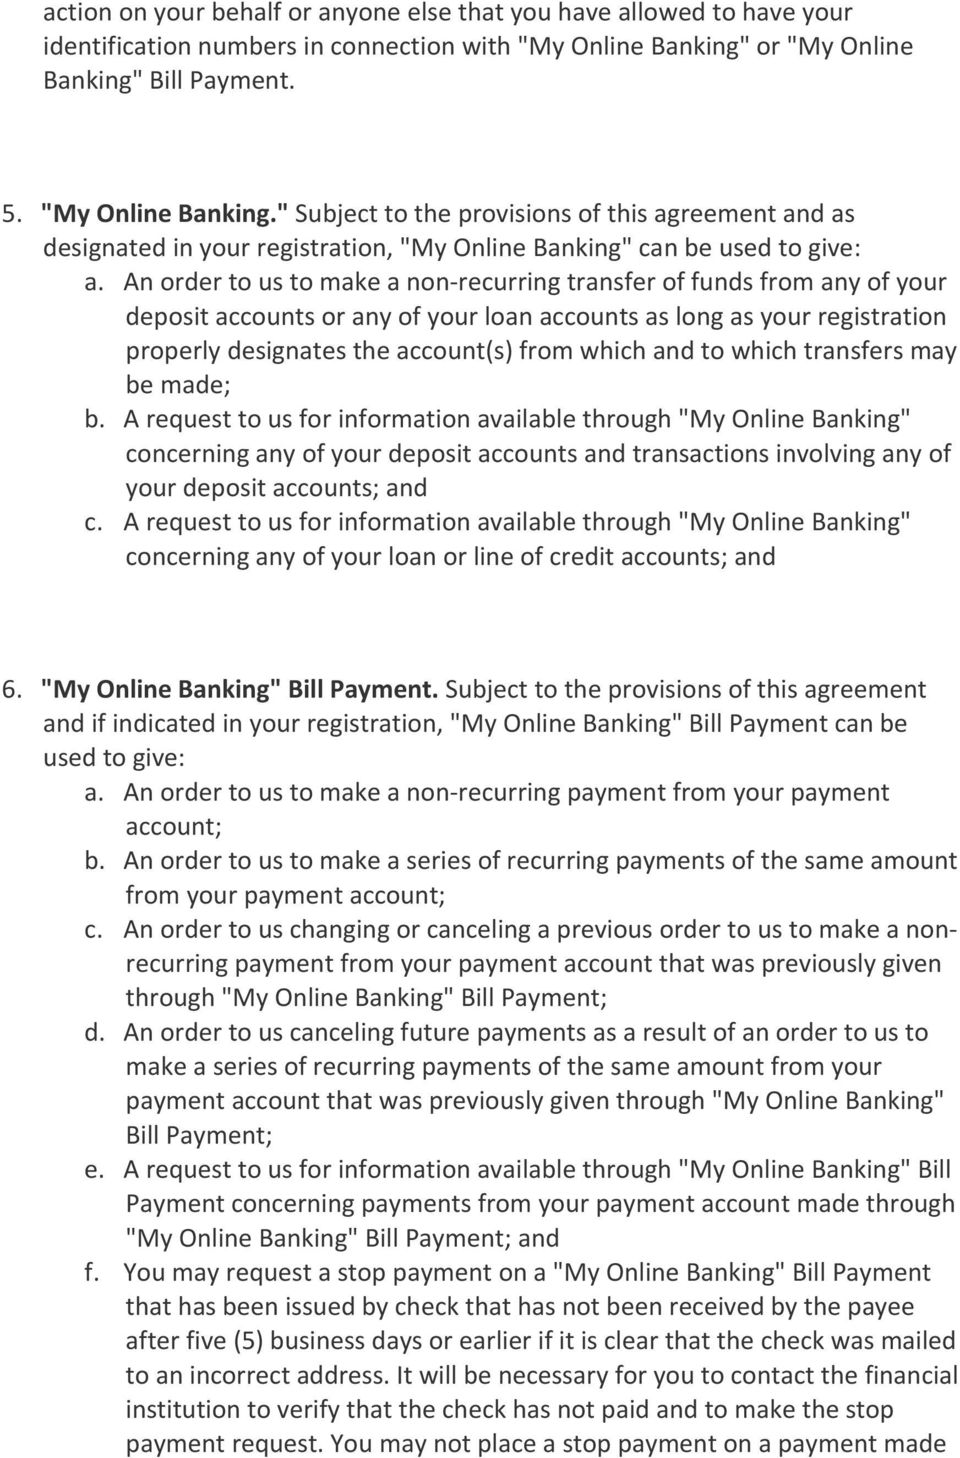 An order to us to make a non recurring transfer of funds from any of your deposit accounts or any of your loan accounts as long as your registration properly designates the account(s) from which and